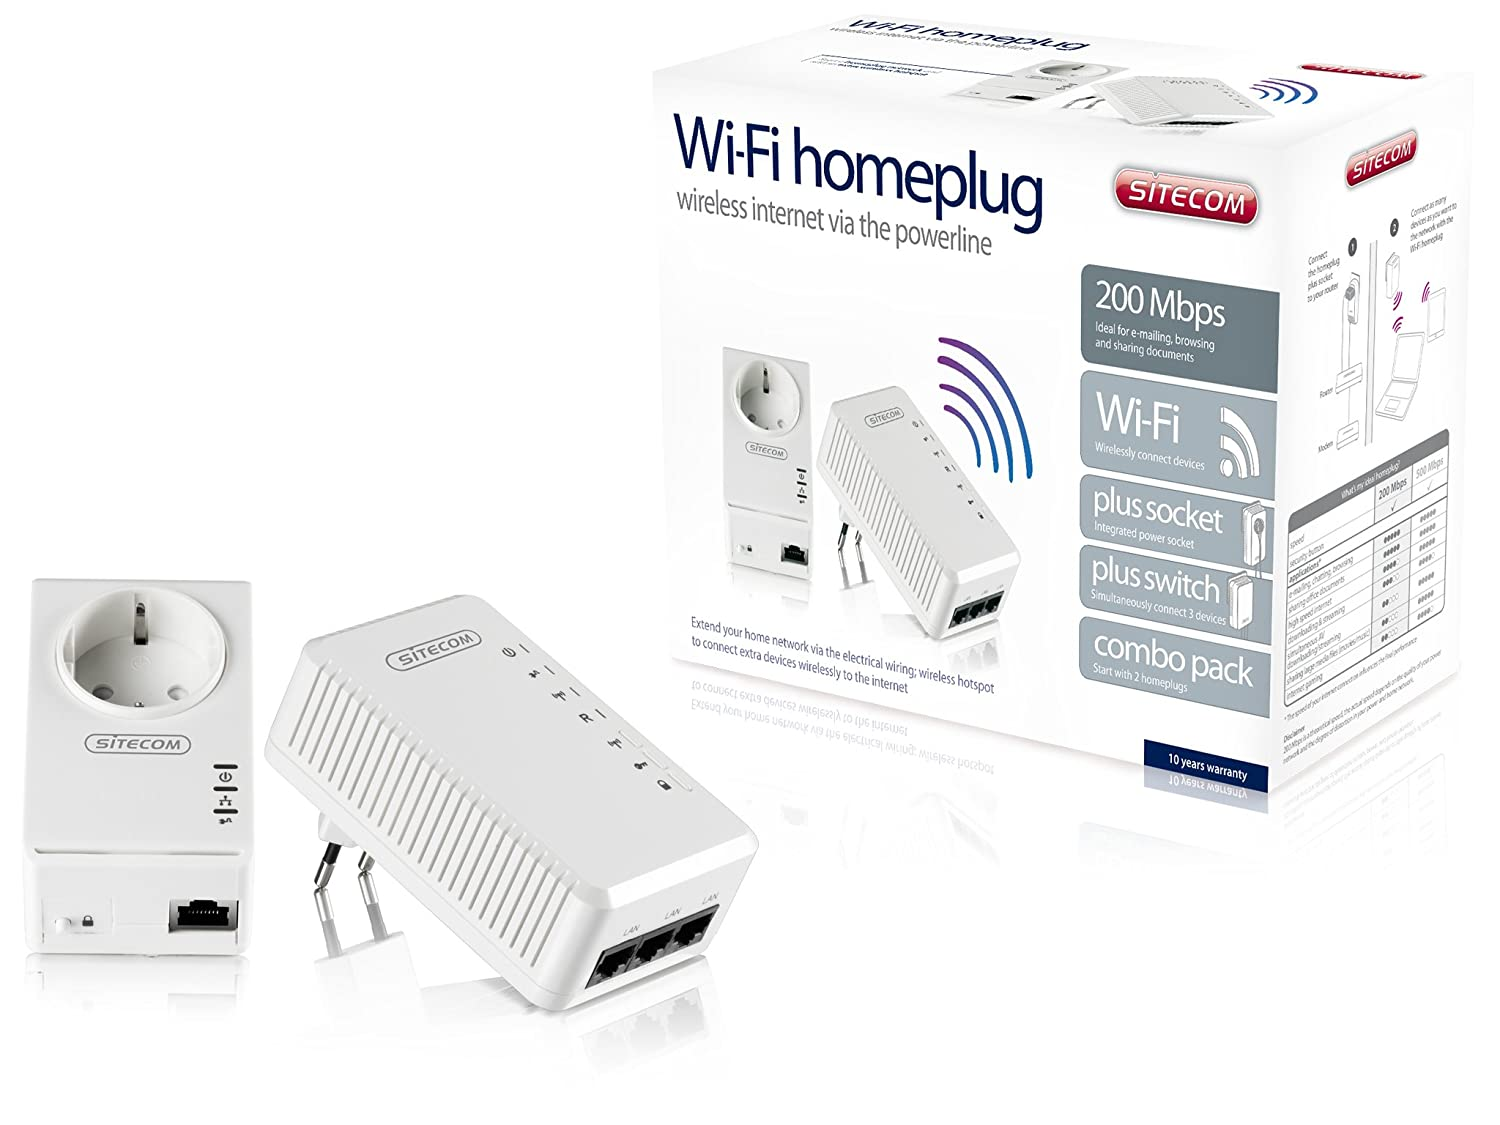 Sitecom Ln531 Wifi Homeplug 200 Mbps Combo Pack Wiring Your House For Internet Electronics